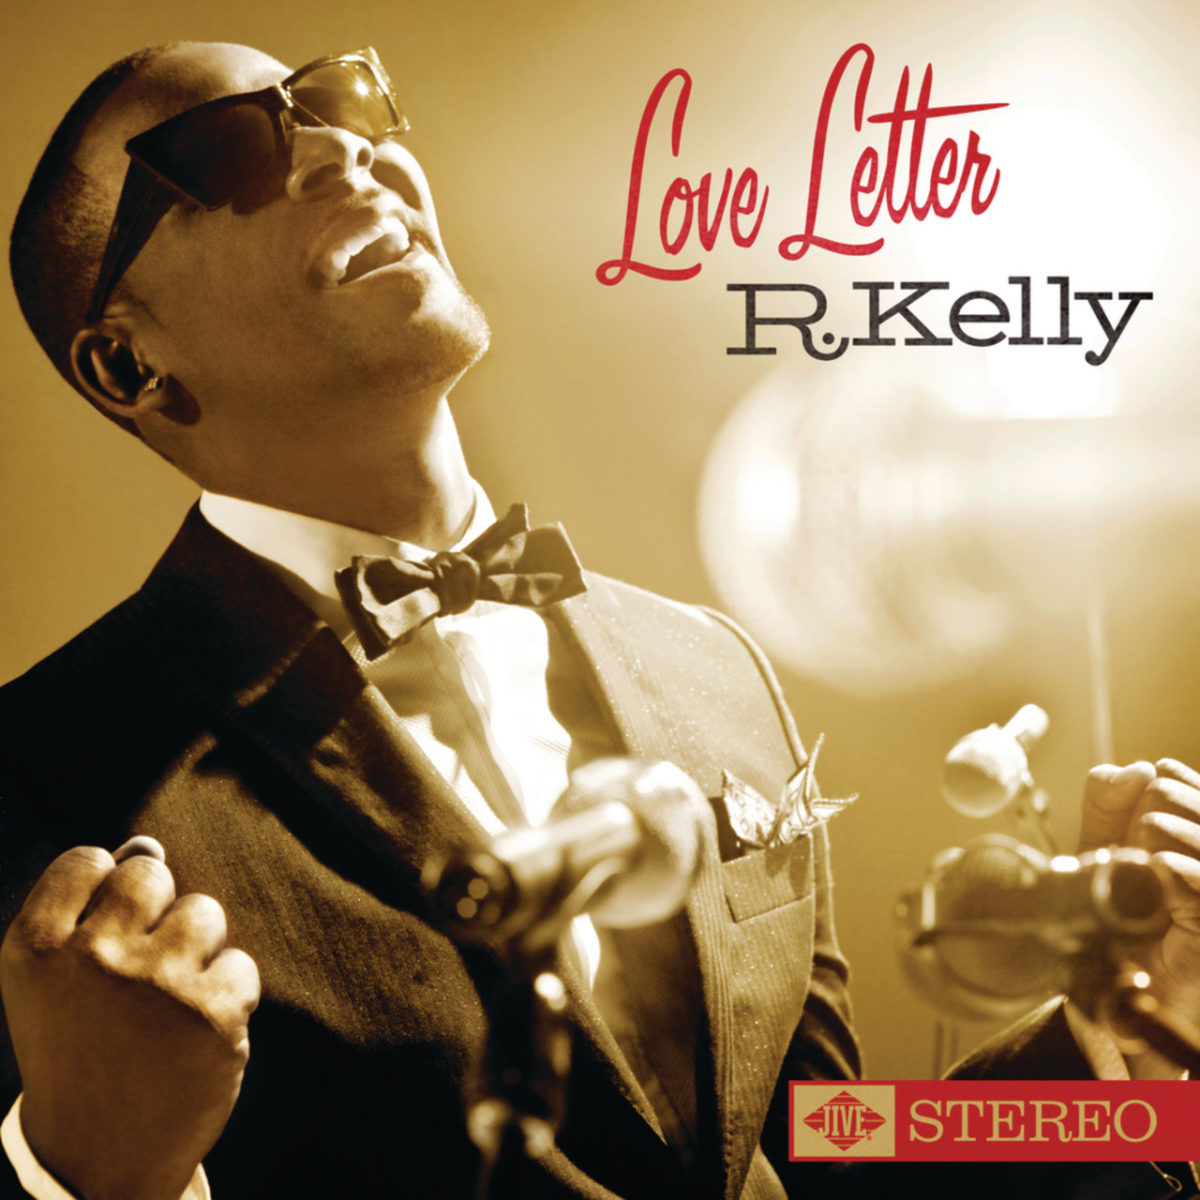 R. Kelly - Love Letter (Cover)